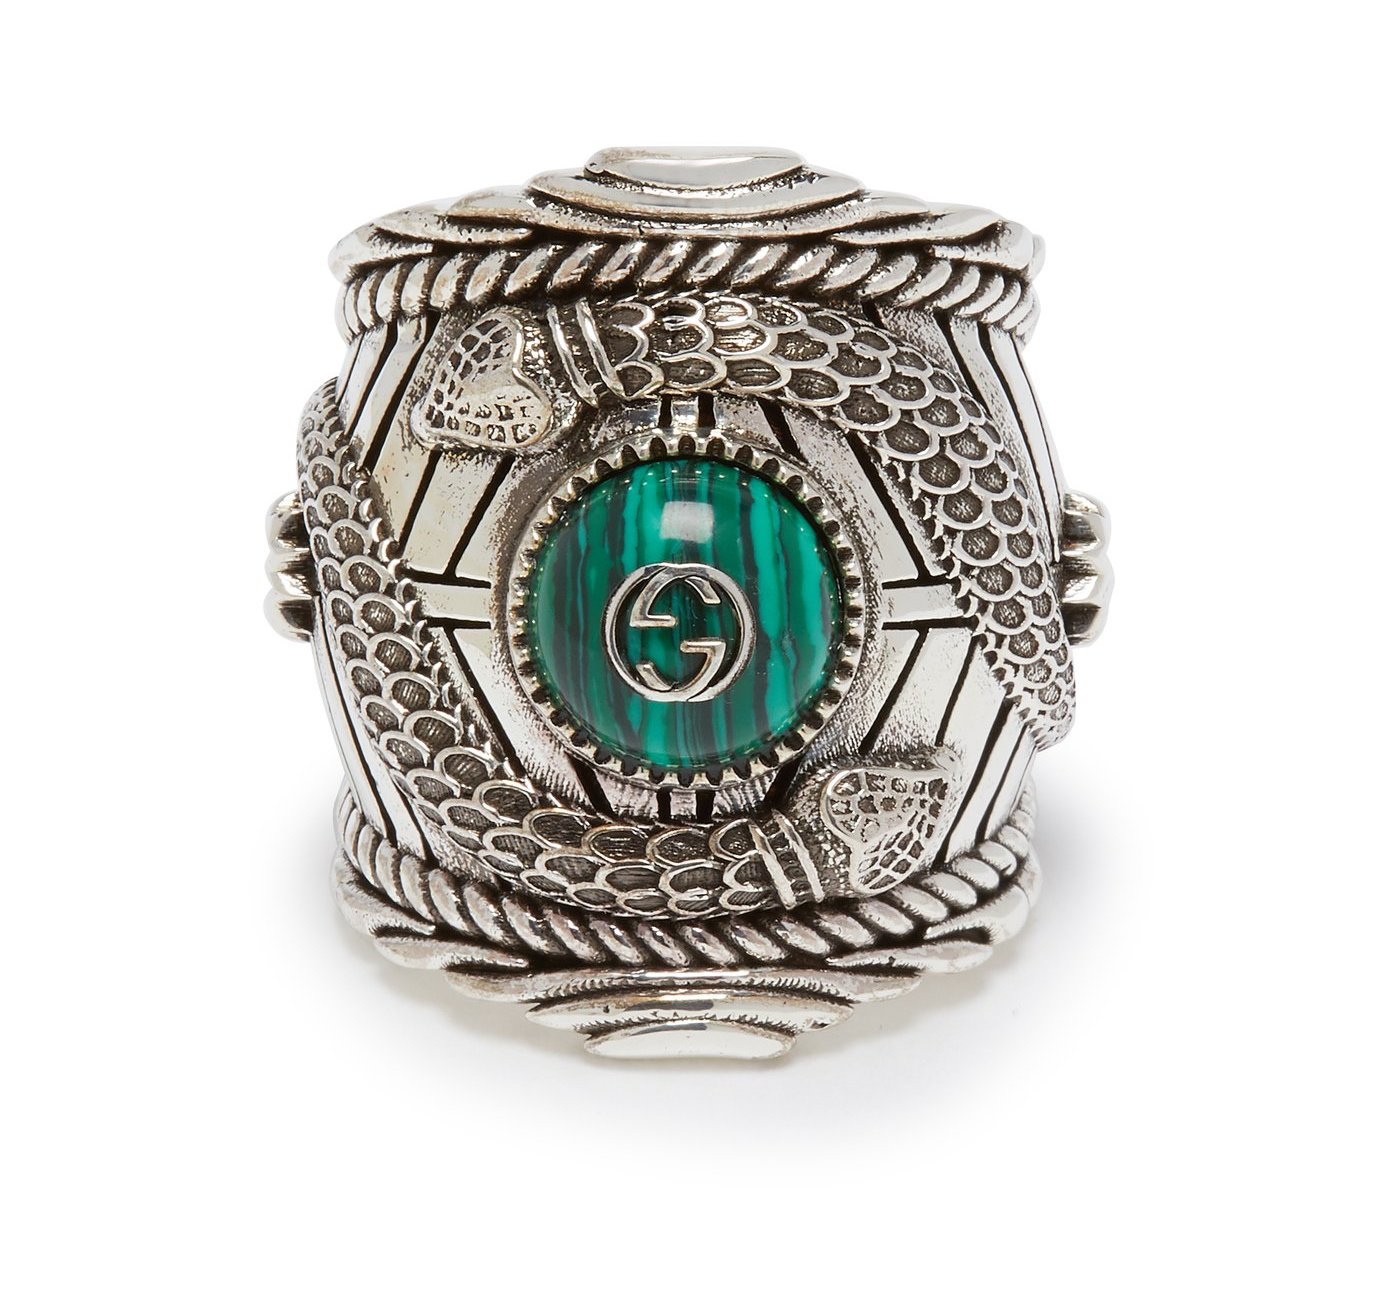 GUCCI Large Gucci Garden ring